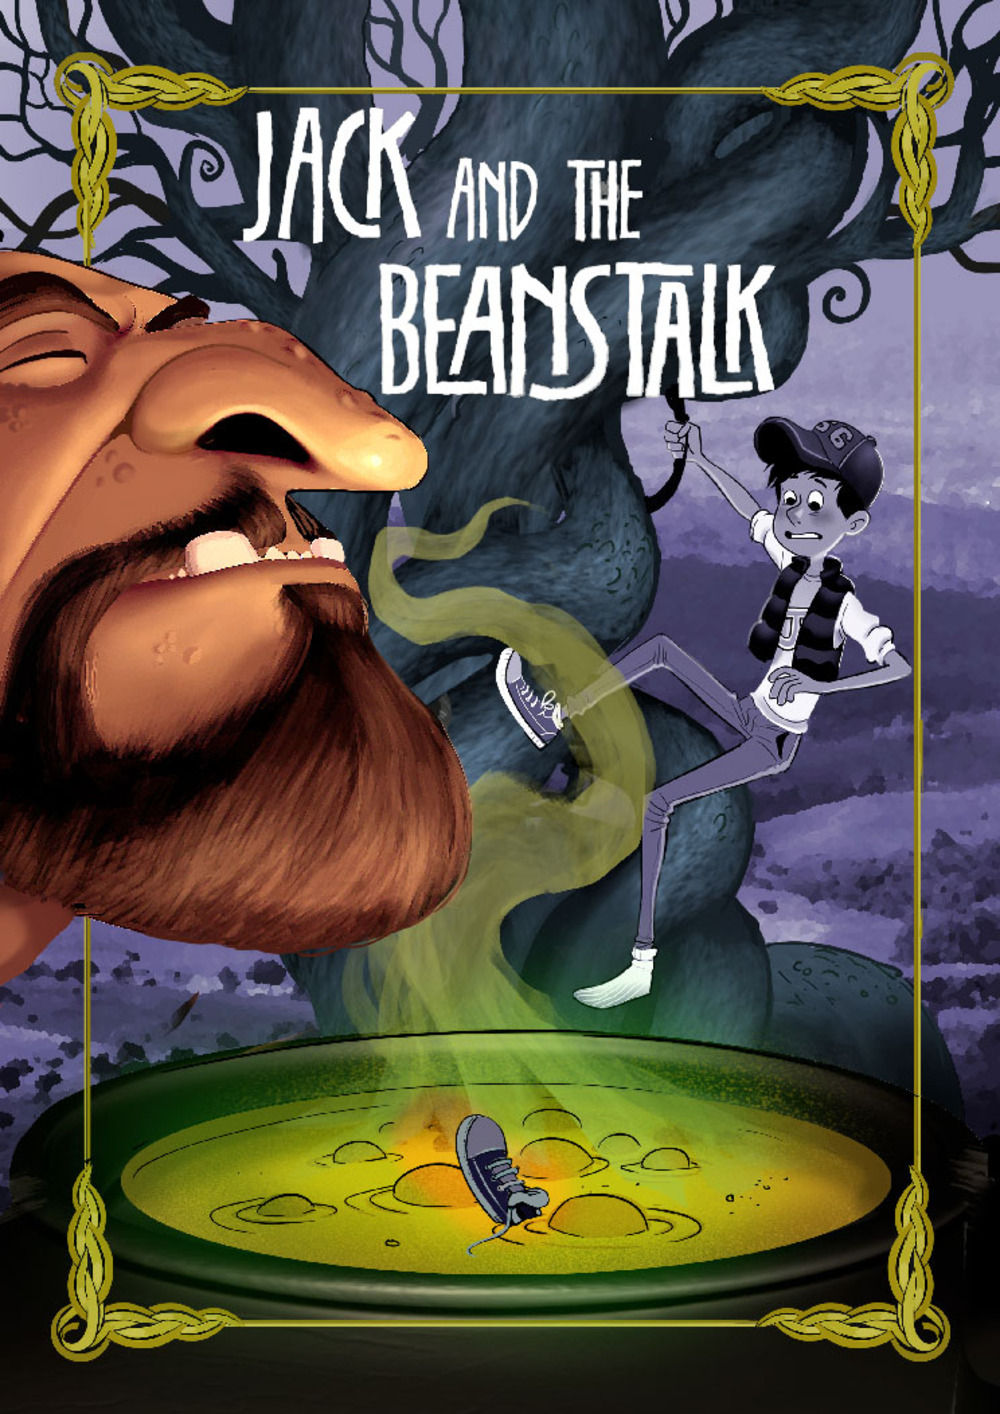 Cover for Jack and Beanstalk http://www.amazon.com/Jack-Beanstalk-Interactive-Adventure-Fractured/dp/1491459301/ref=sr_1_13?ie=UTF8&qid=1431874853&sr=8-13&keywords=amit+tayal